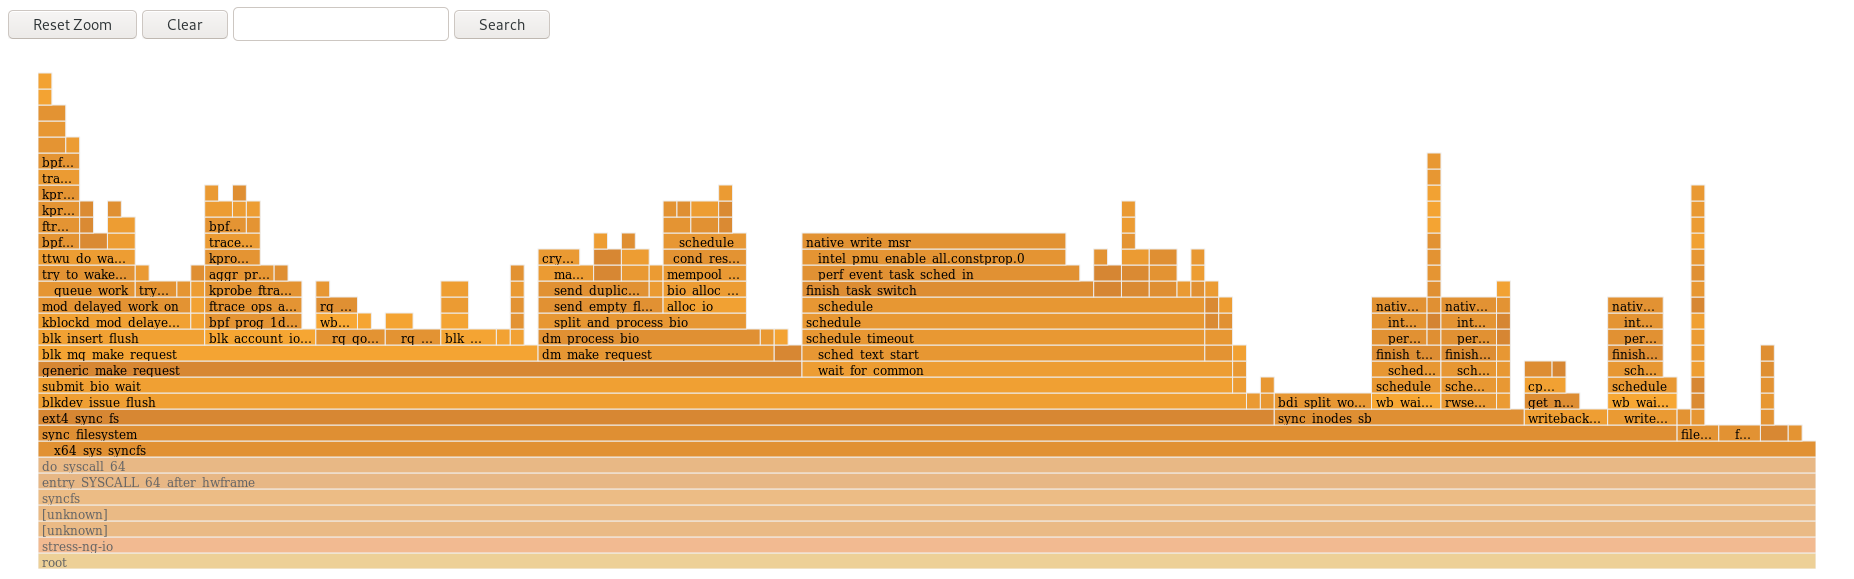 zoomed in flamegraph